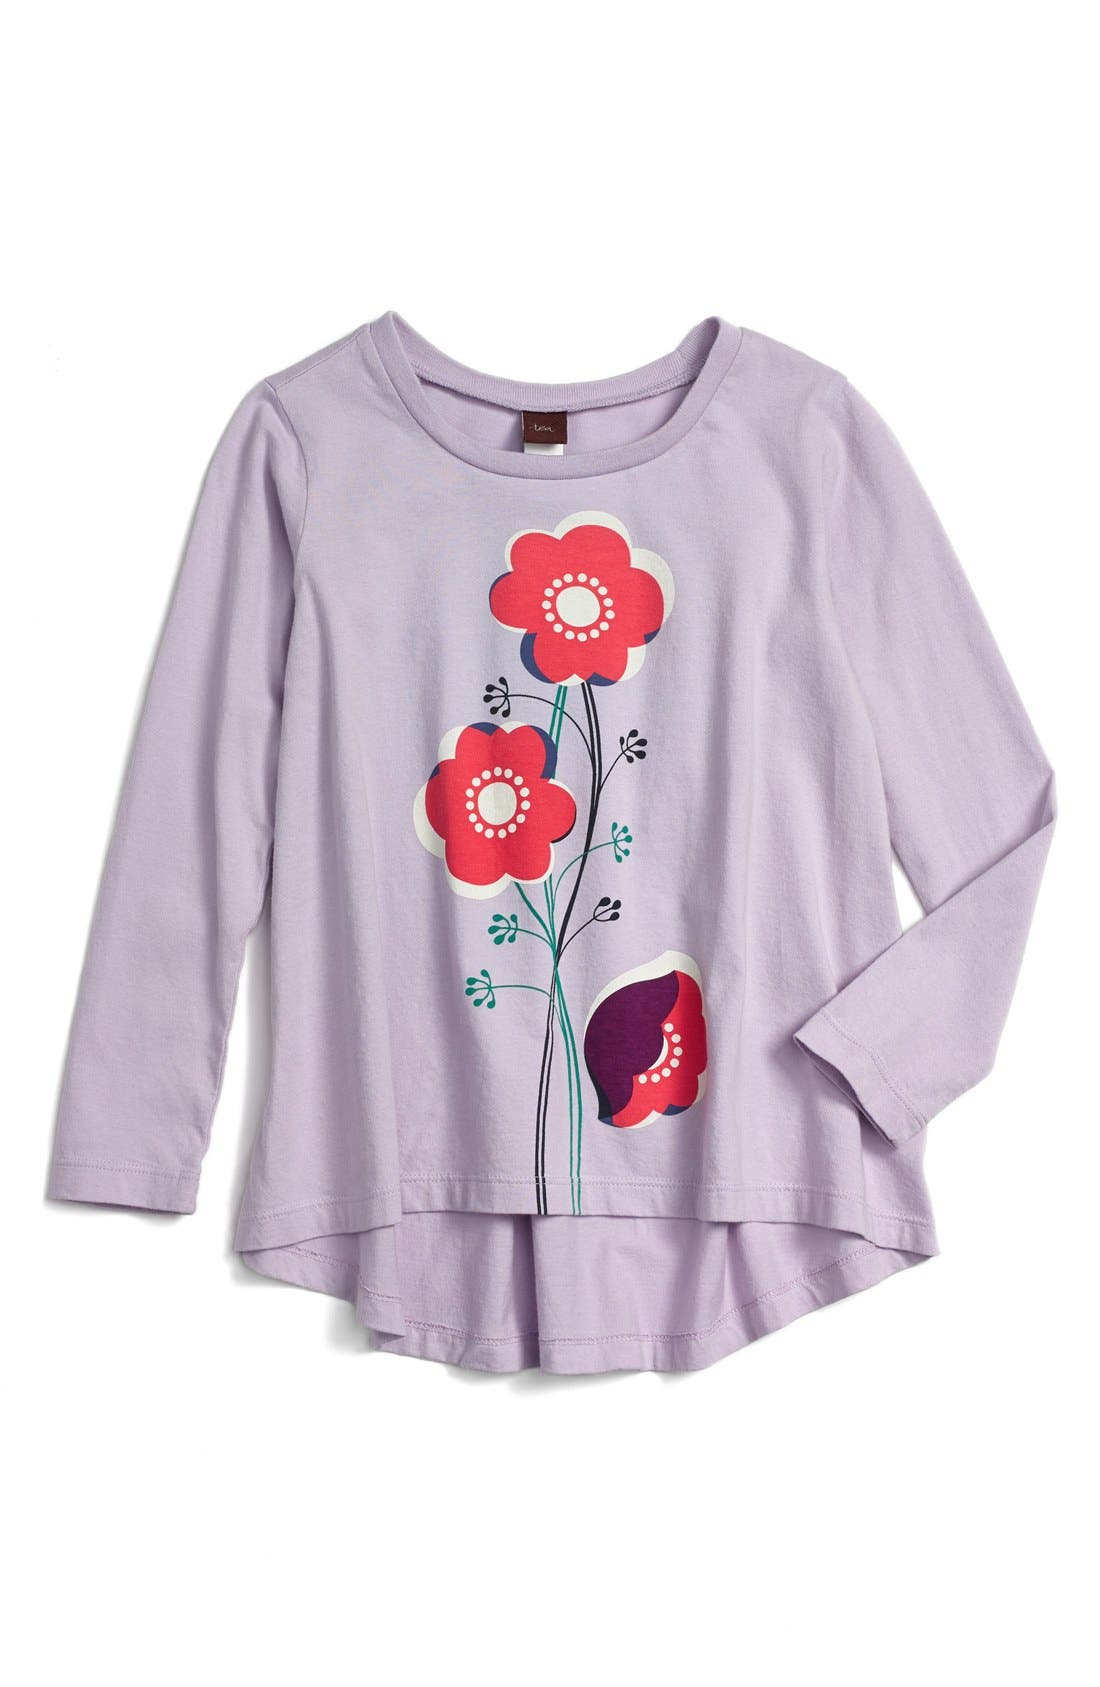 Alternate Image 1 Selected - Tea Collection 'Blumen Auf Stengel' High/Low Twirl Top (Baby Girls)